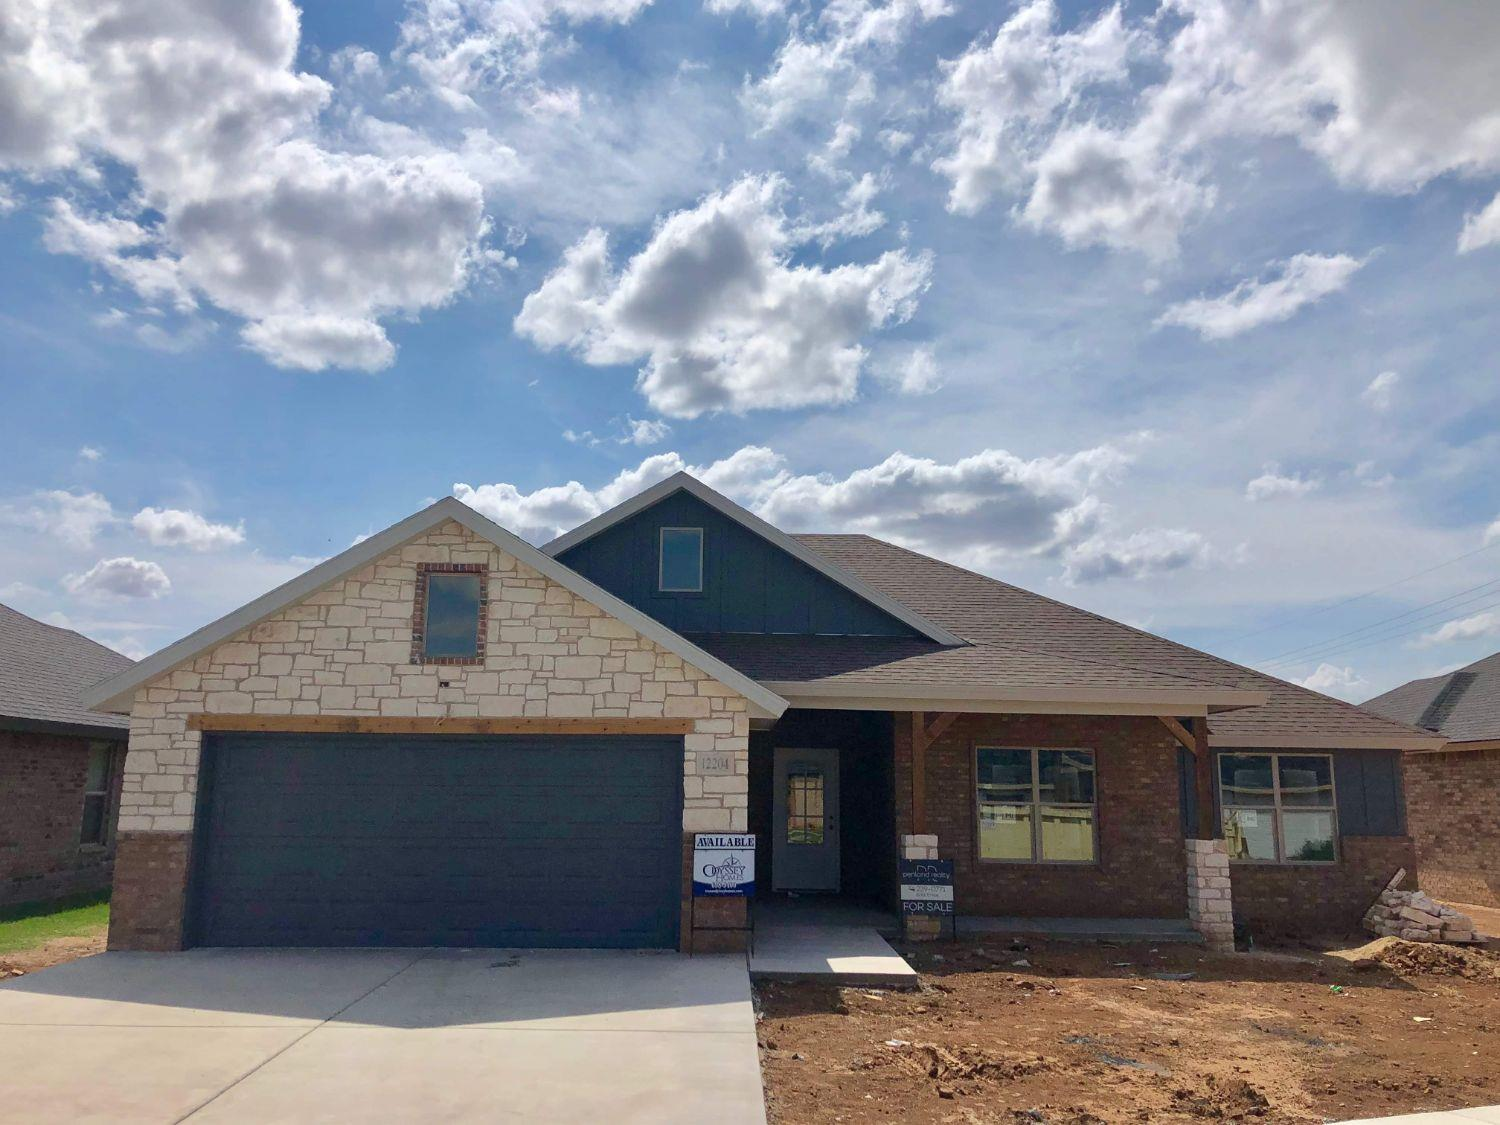 Beautiful New Home Built by Odyssey Homes in Lubbock - Cooper ISD on a quiet cul-de-sac street.  This home boasts an open concept floor plan with a large family room that features a vaulted ceiling. The family opens into the kitchen which has a center island with seating that provides a great place for additional guests.  There is also a bonus room that has tons of natural light and could be used for many different purposes.  The large master suite has a vaulted ceiling and includes separate vanities and a garden tub along with a large walk-in closet. Sod, sprinkler system, 6' fence with steel posts included. Completion in August!